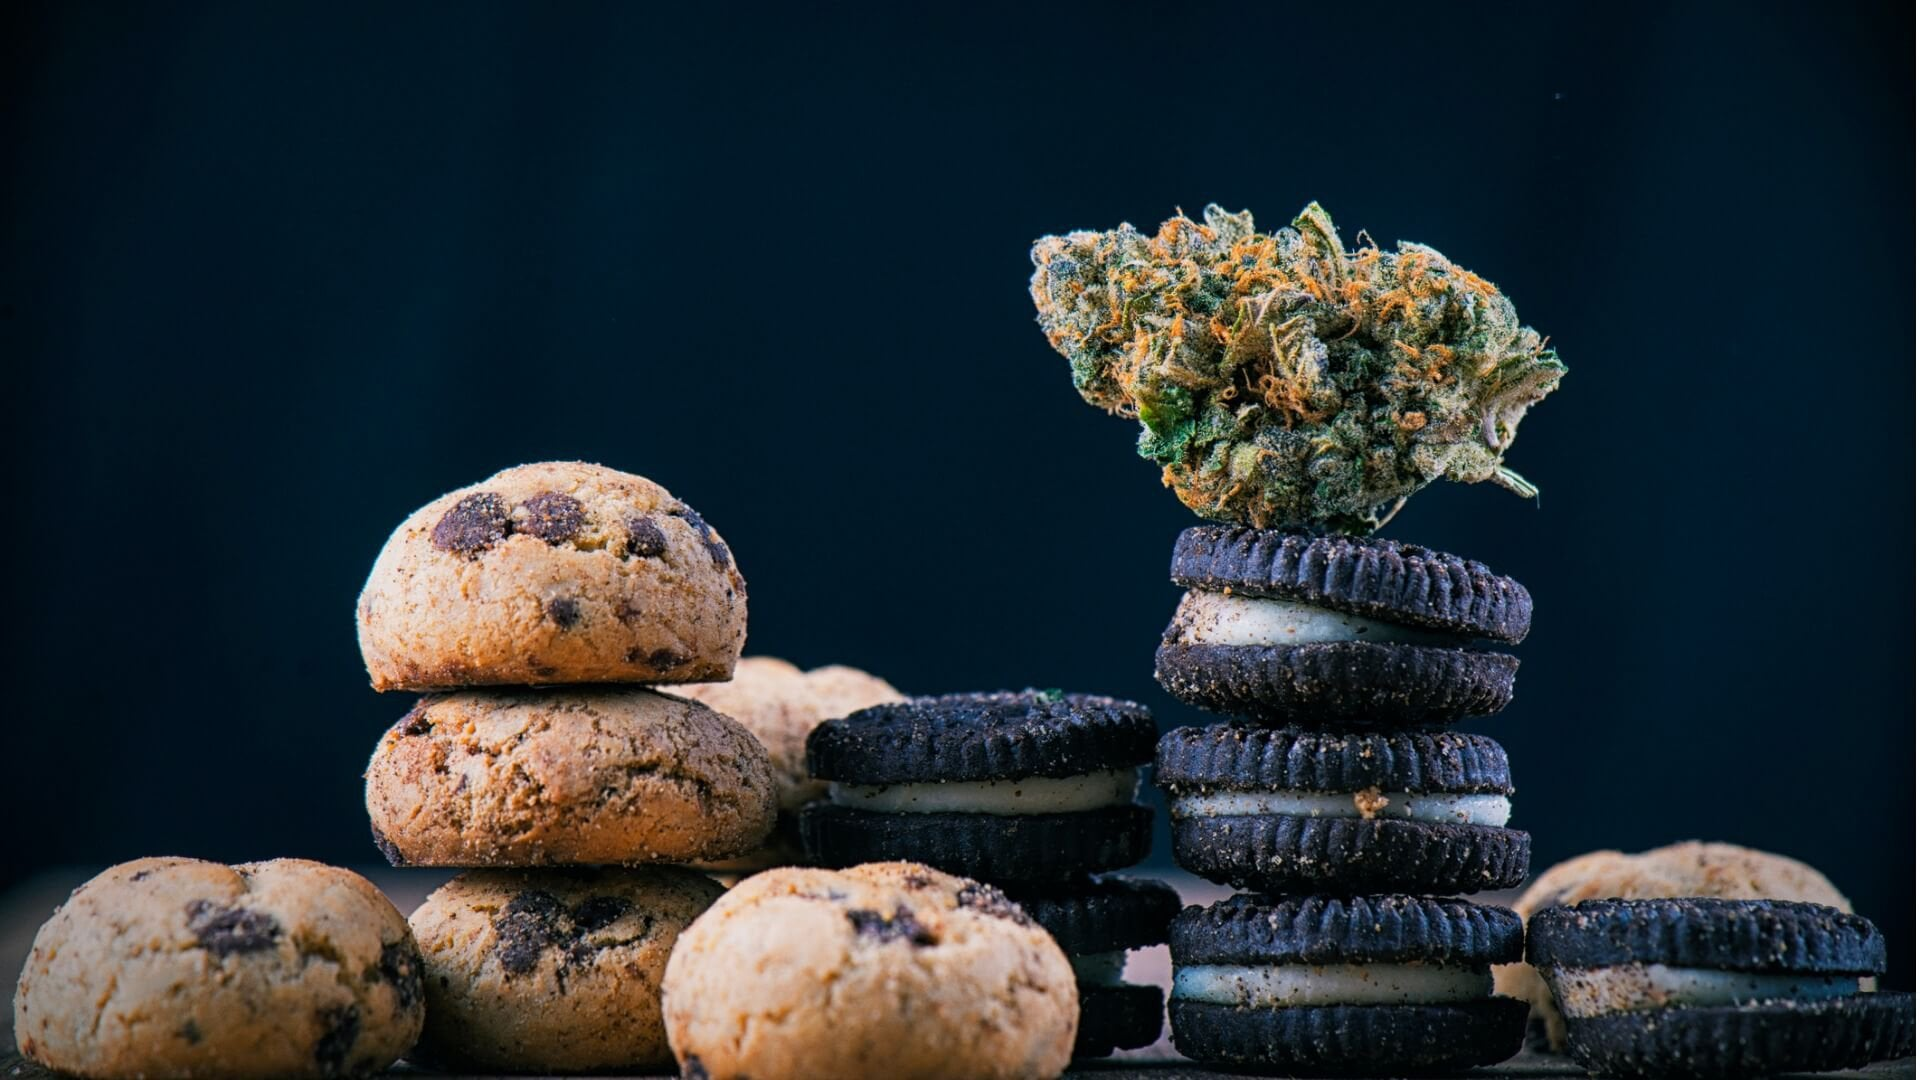 Top 3 Easiest Marijuana Edible Recipes to Try at Home